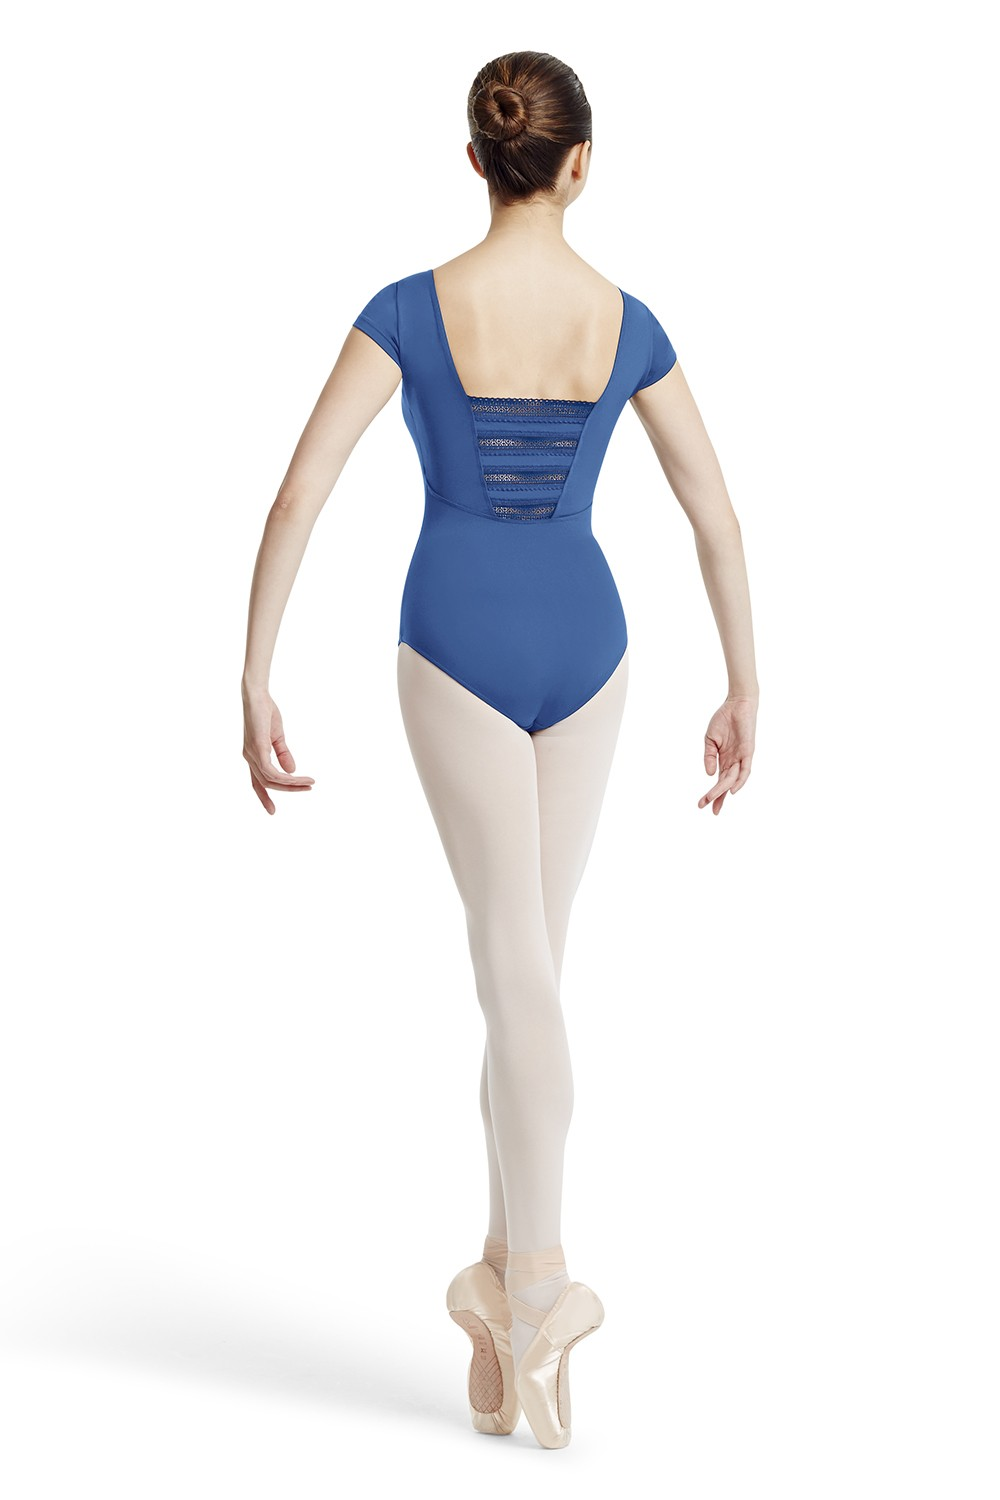 Stretch Cap Sleeve Leo Children's Dance Leotards